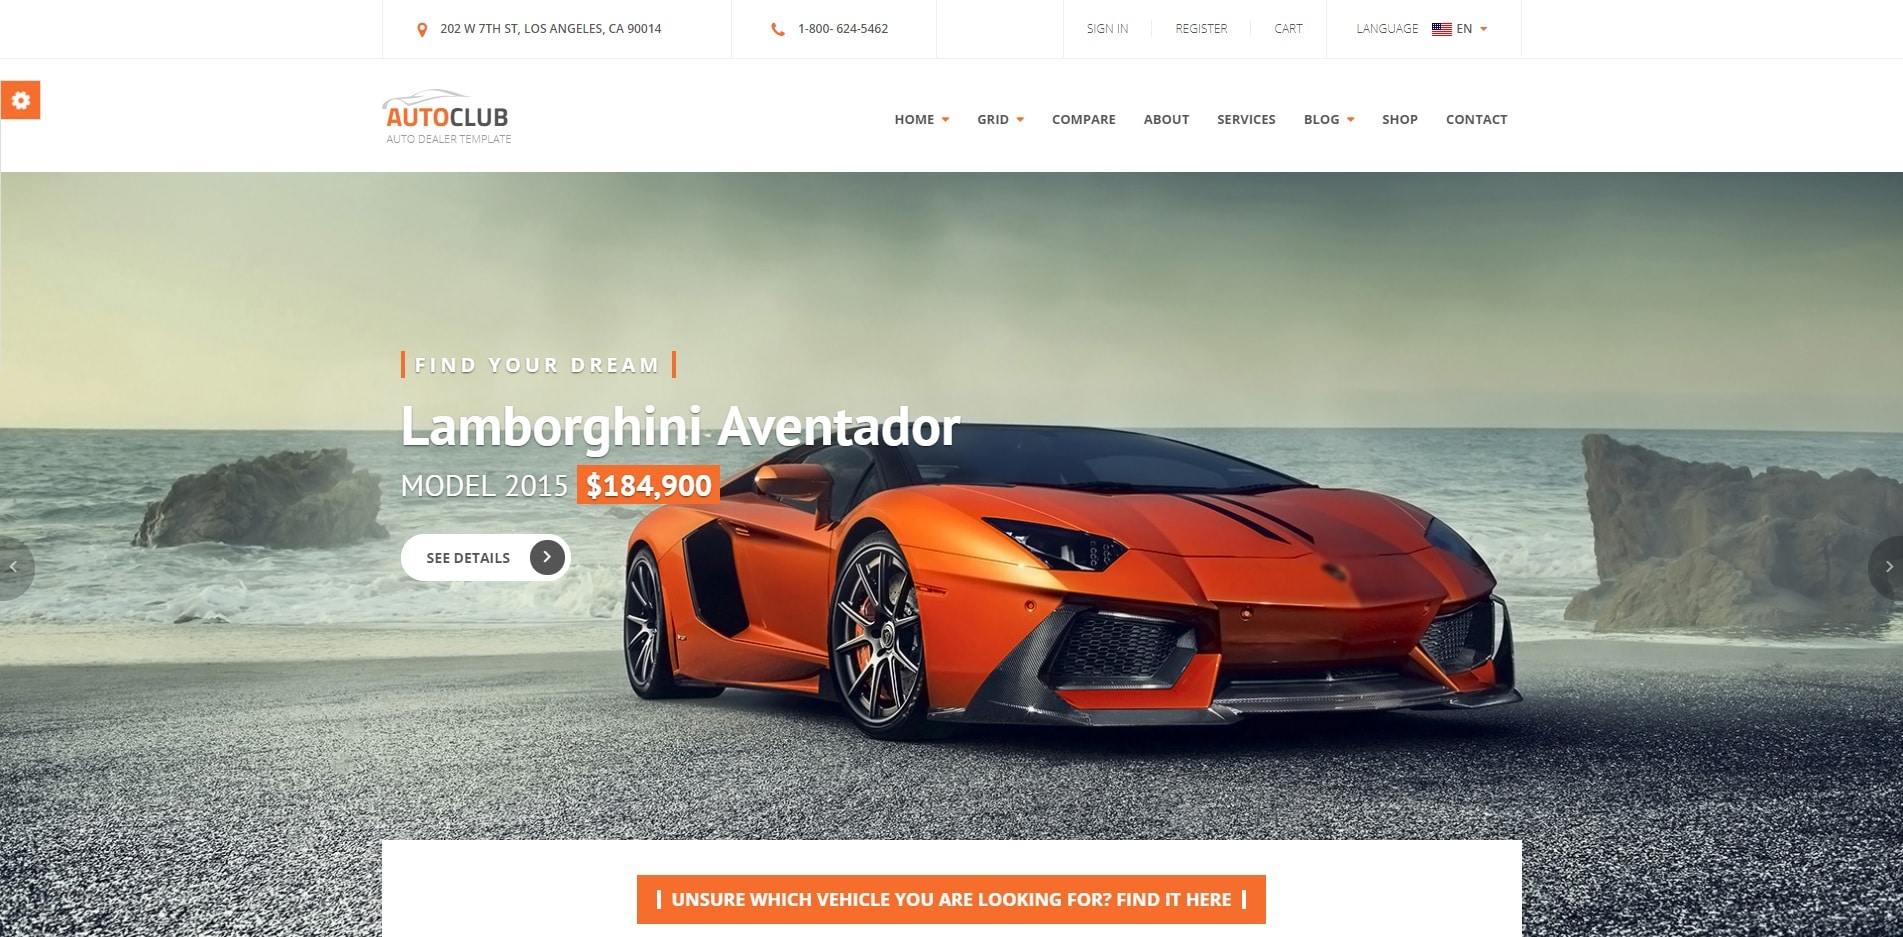 Inspirational designs, illustrations, and graphic elements from the world's best designers. 25 Premium Car Dealer Website Template WordPress Themes 2021